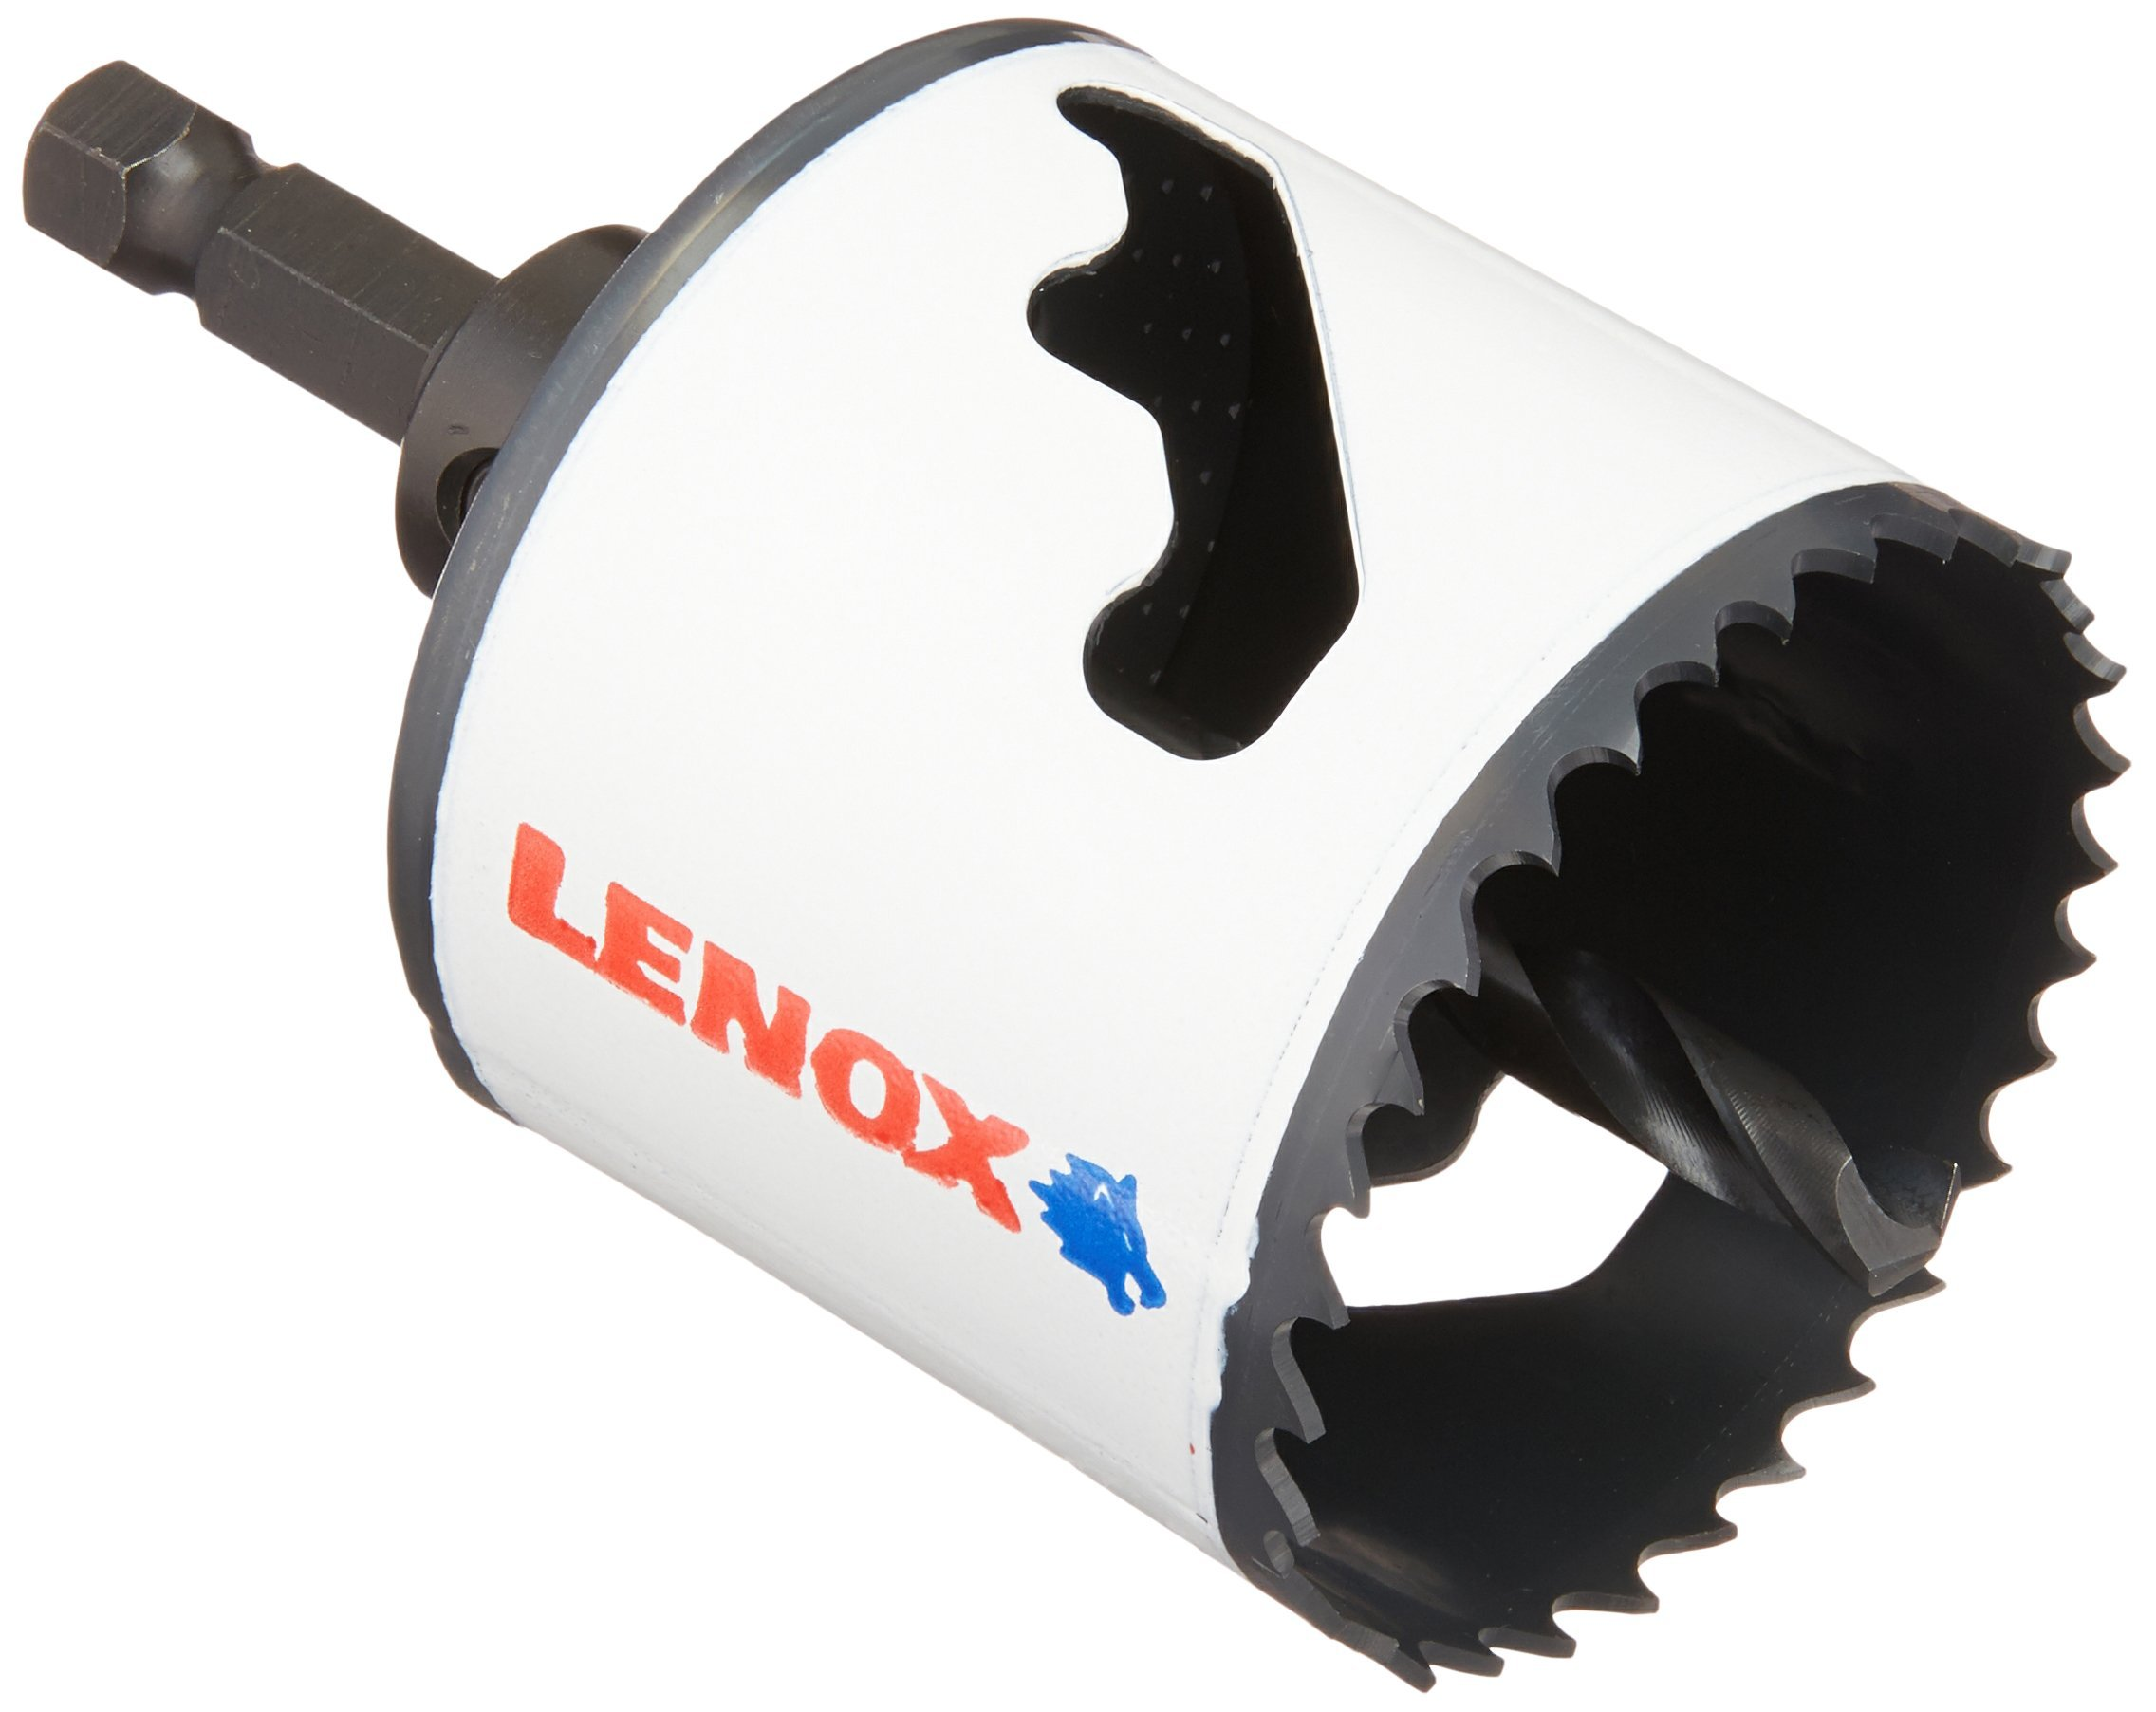 LENOX Tools Bi-Metal Speed Slot Arbored Hole Saw with T3 Technology, 2-1/8''